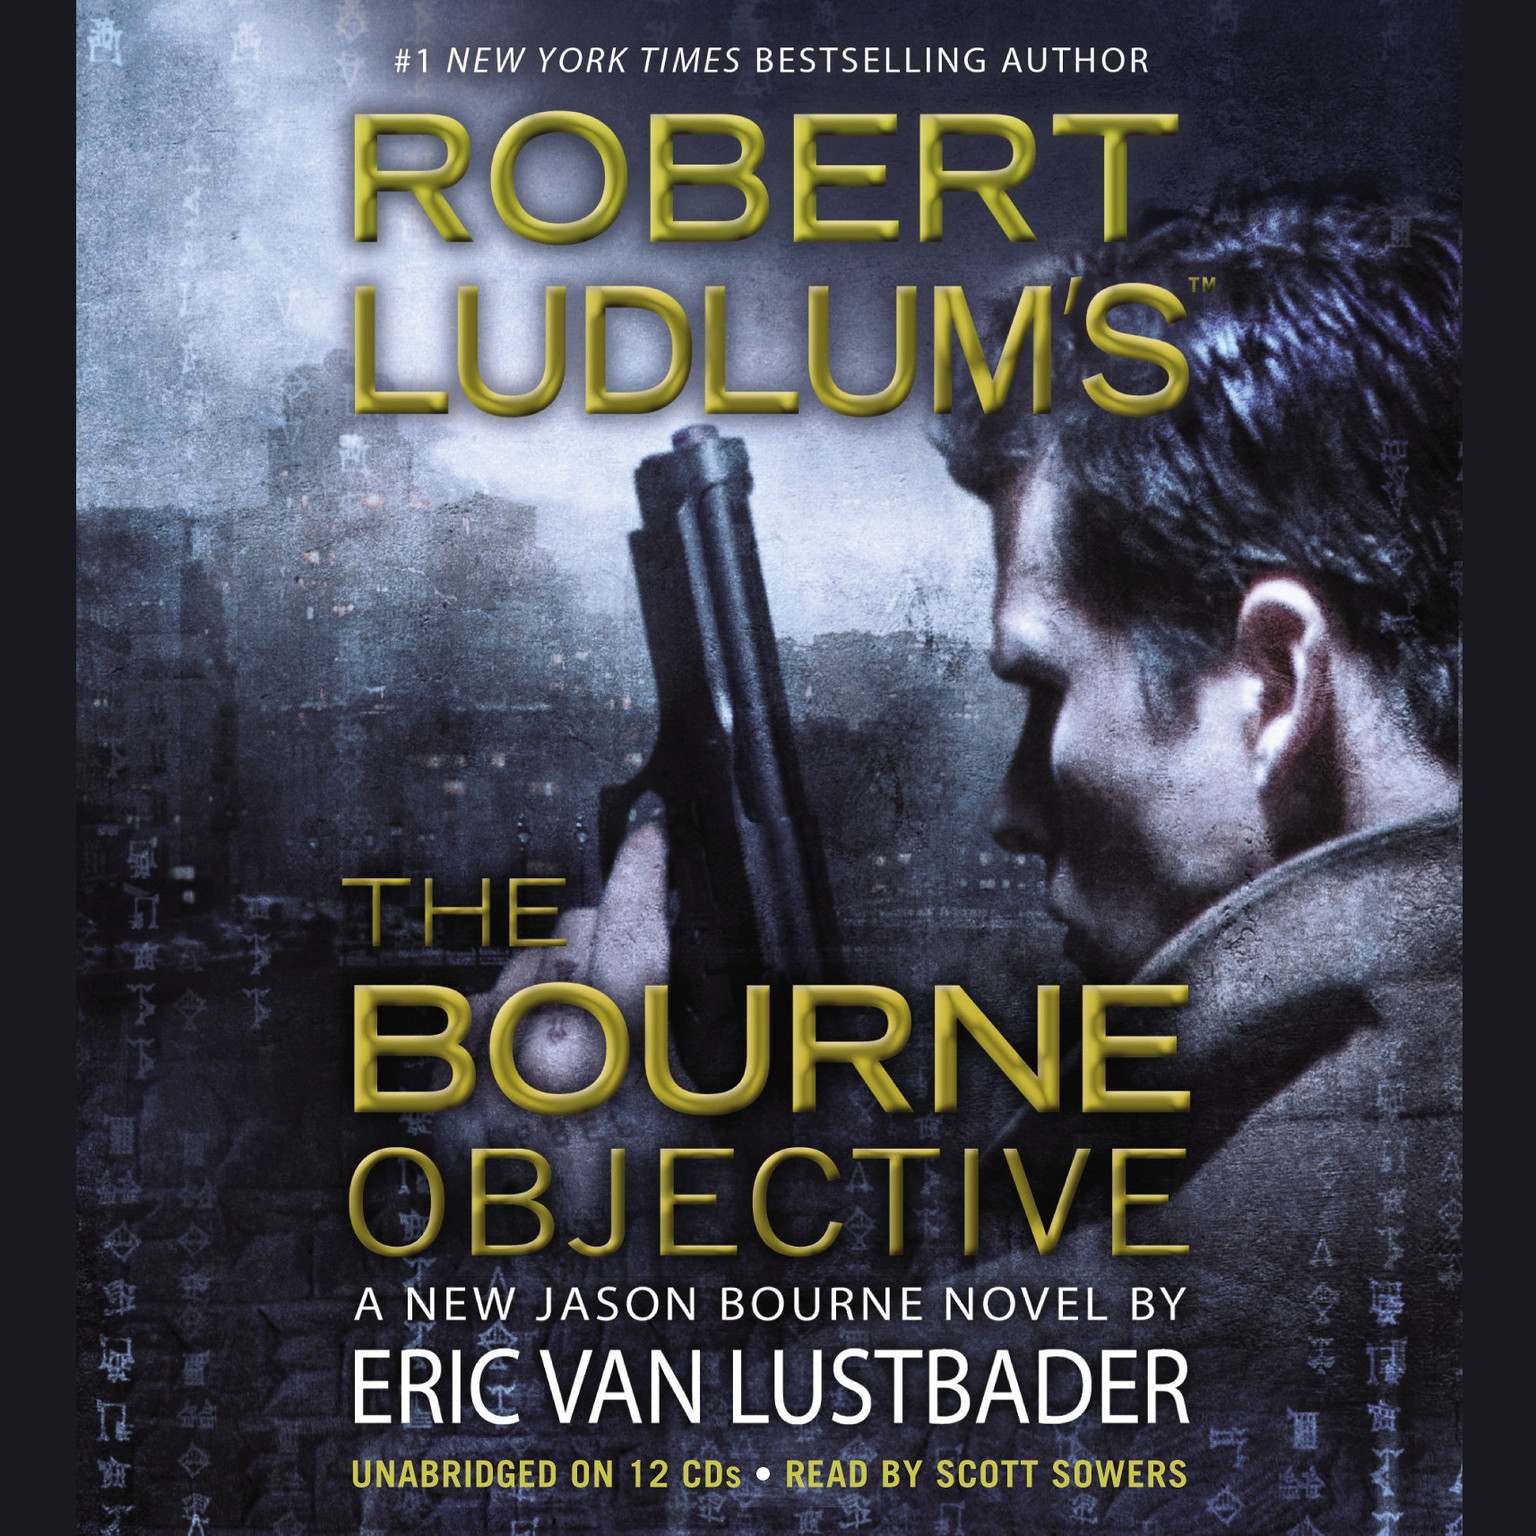 Printable Robert Ludlum's The Bourne Objective Audiobook Cover Art